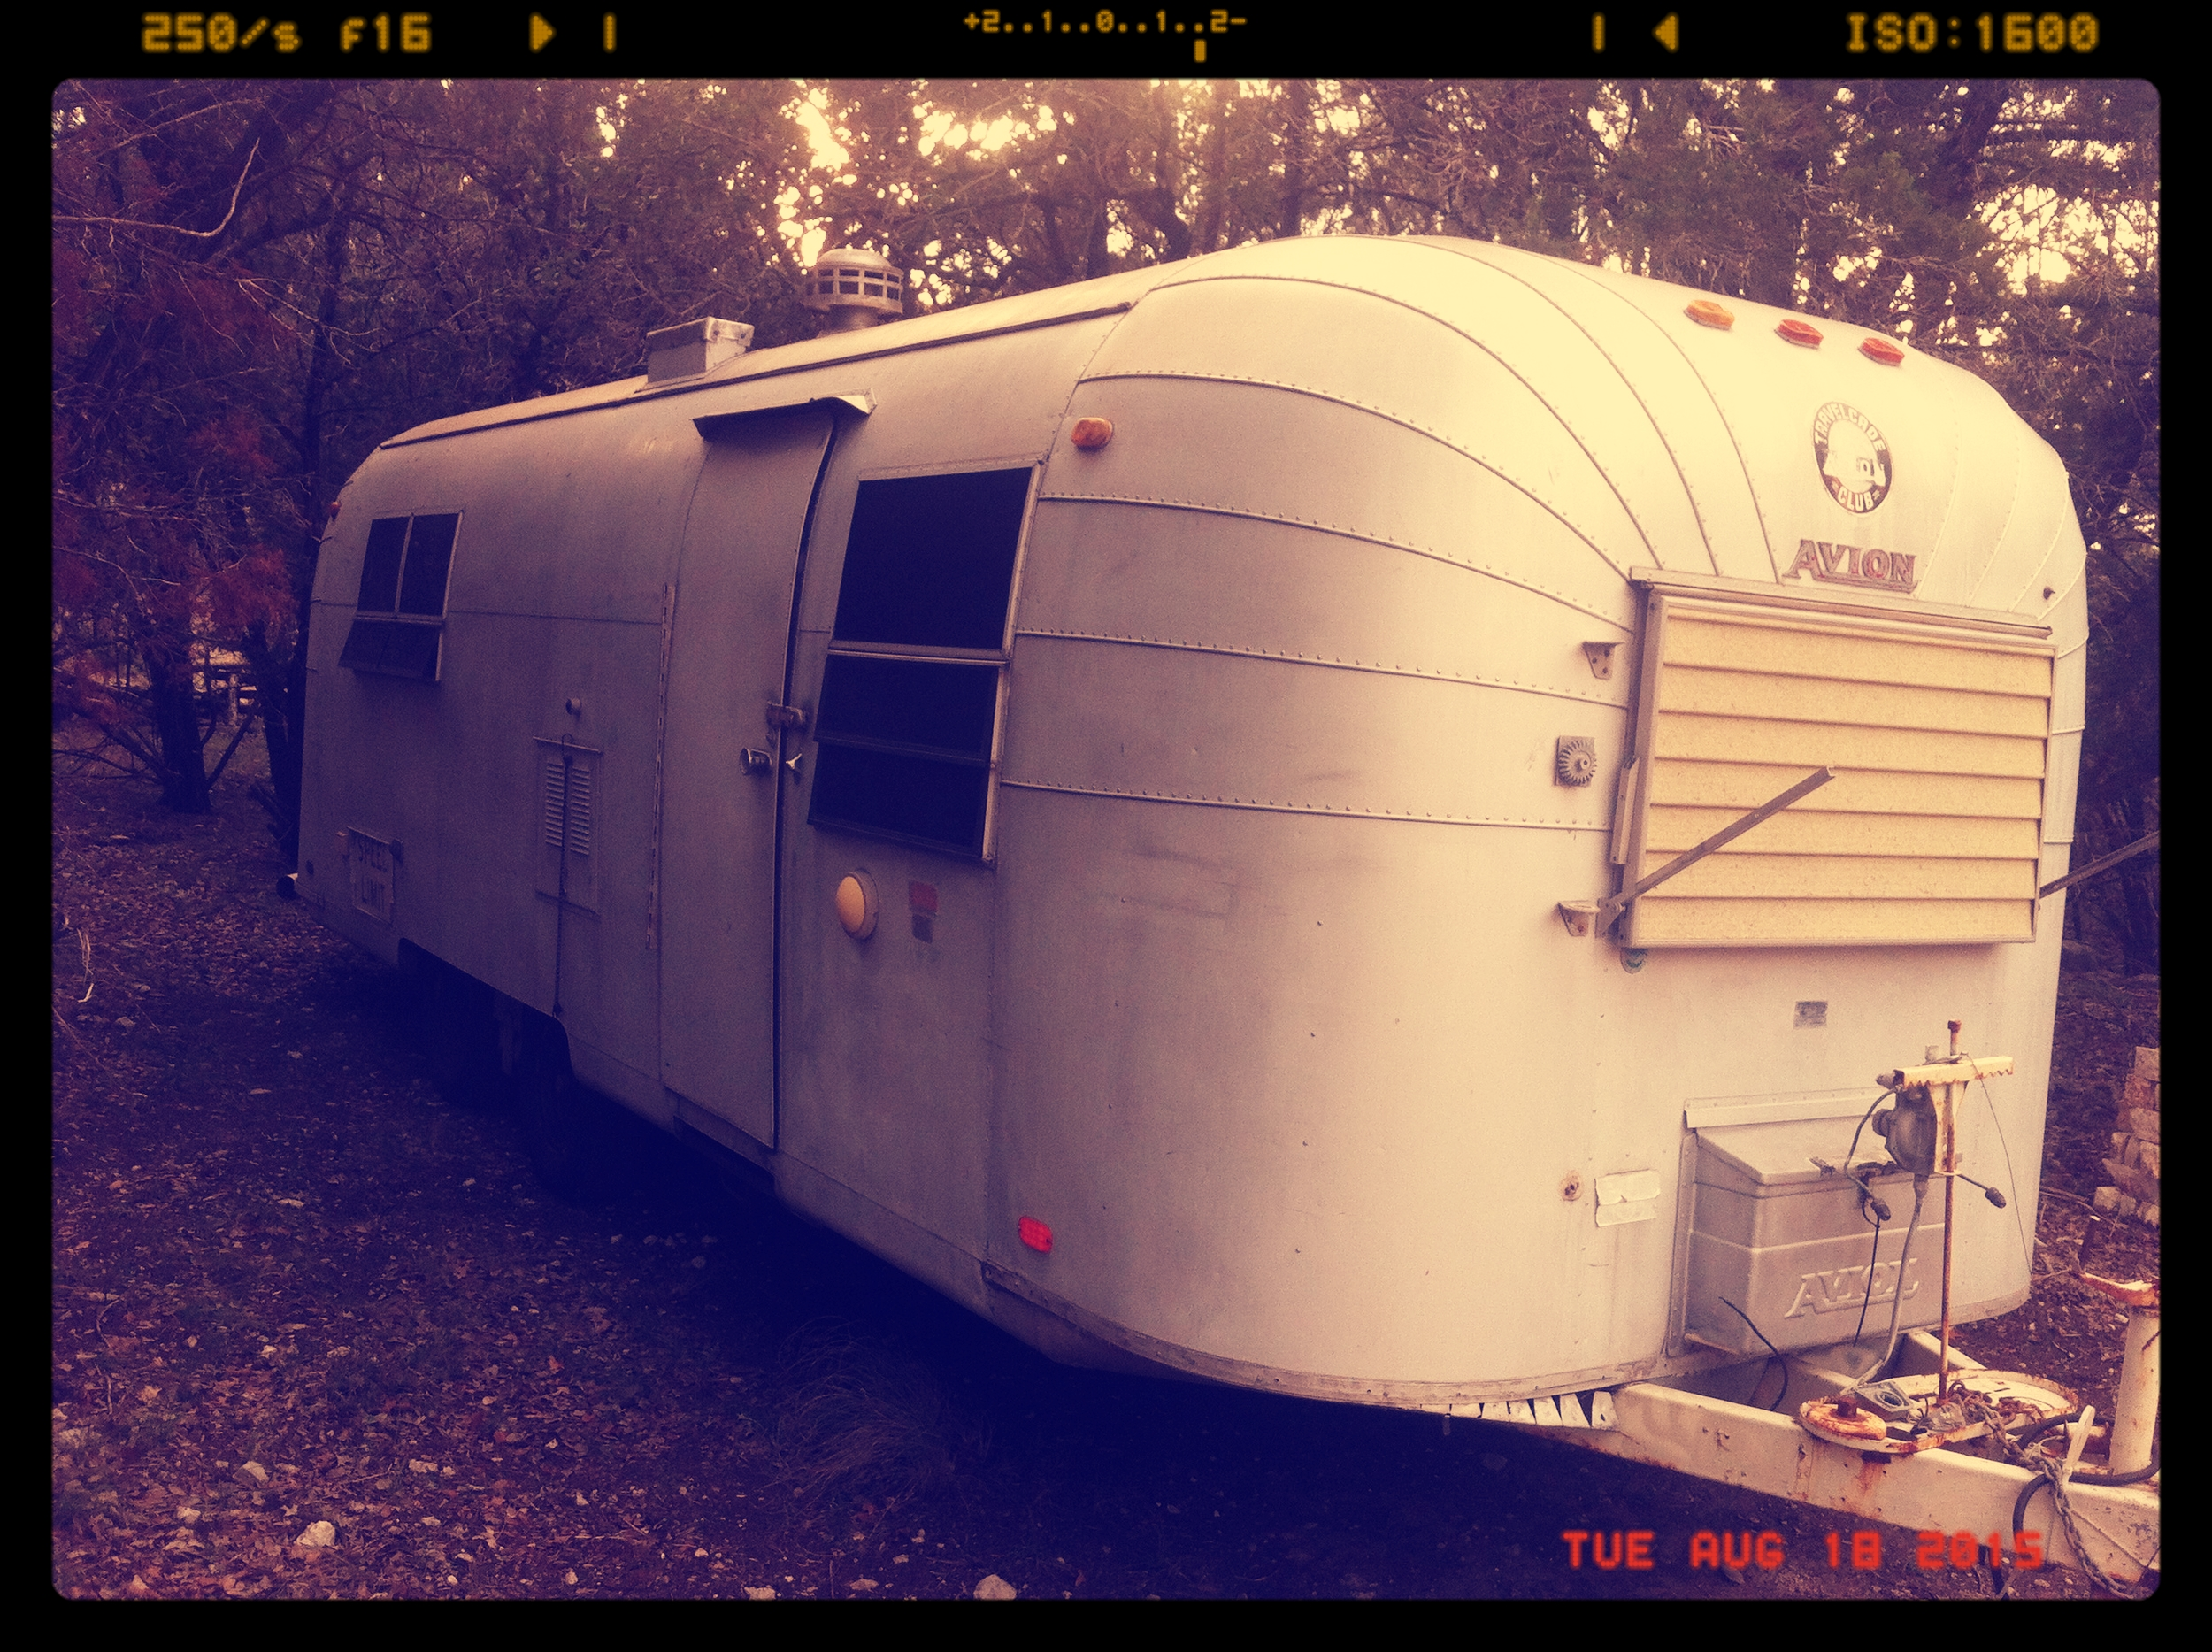 "The long overdue resurrection of the Hindenburg (""Oh, the humanity!"") basecamp build has resumed...  Our mobile offices and quarters for extended field projects and travels should prove interesting.  Or disastrous.     Stay tuned for updates and the continued clean out and resurrection."